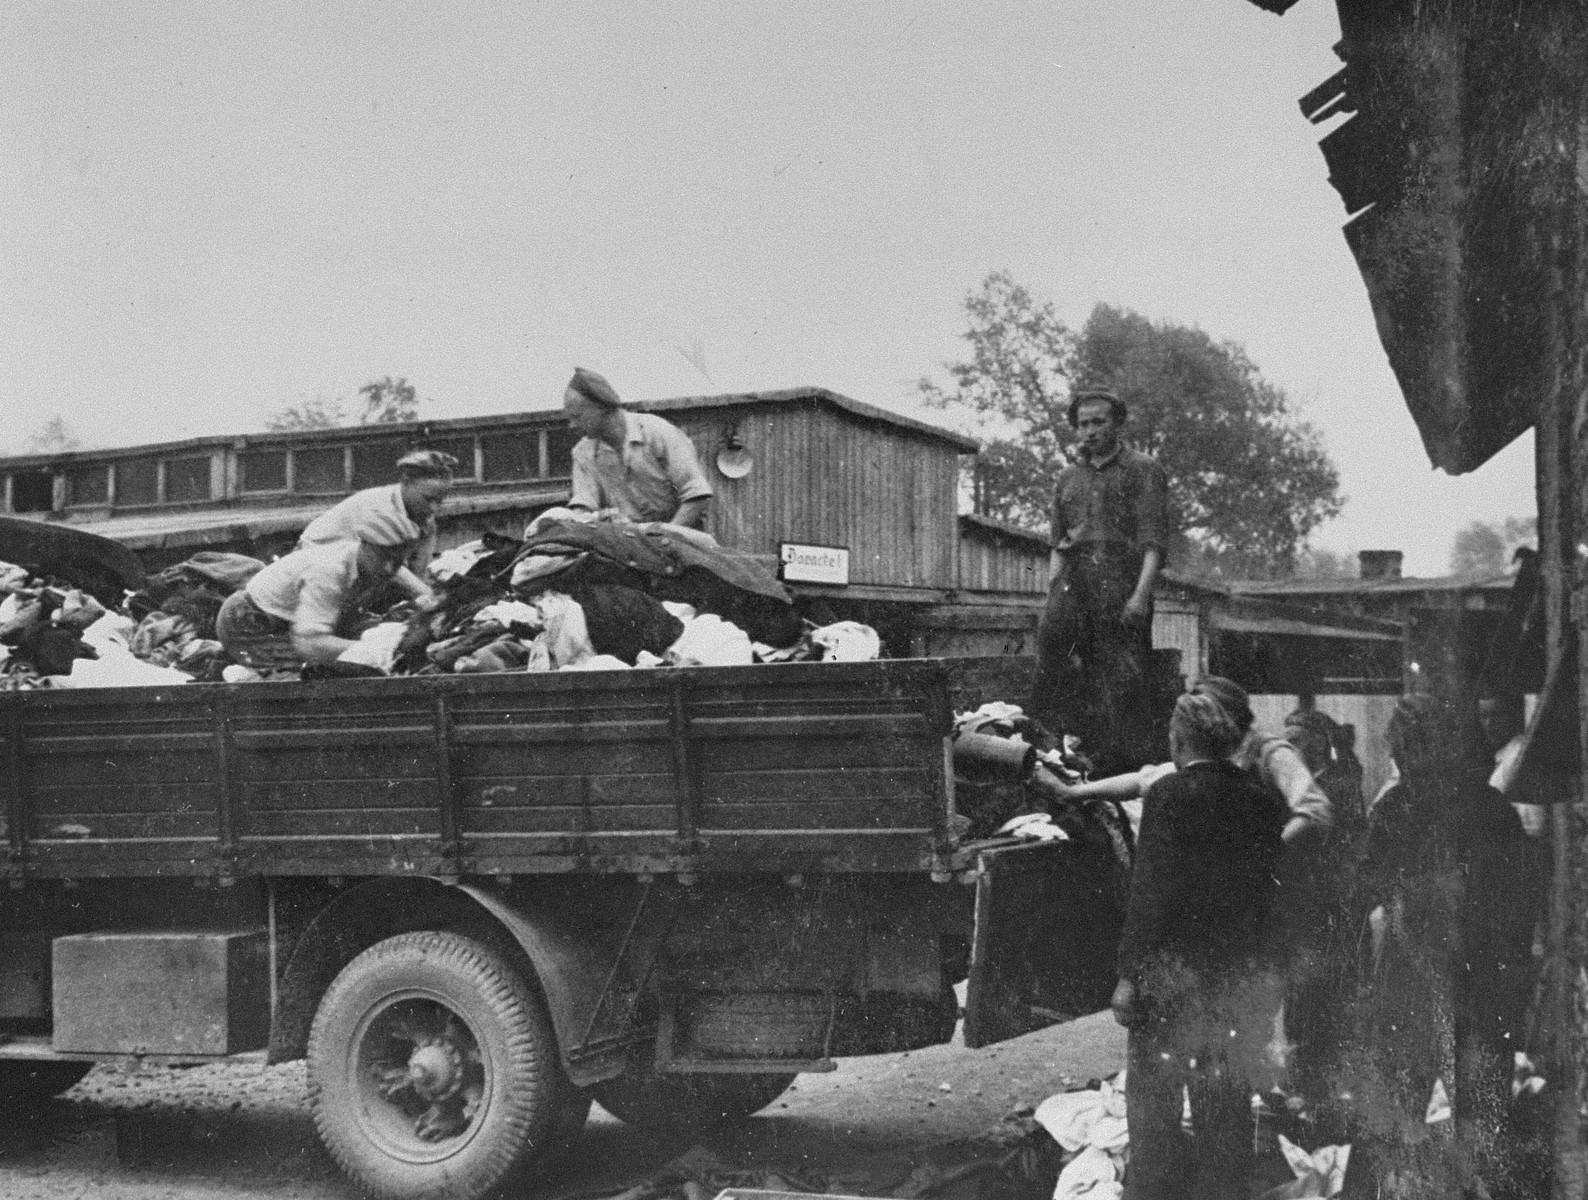 """Prisoners in the Aufräumungskommando (order commandos) unload the confiscated property of a transport of Jews from Subcarpathian Rus at a warehouse in Auschwitz-Birkenau.  The camp prisoners came to refer to the looted property as """"Kanada,"""" associating it with the riches symbolized by Kanada.  The members of this commando were almost exclusively Jews.  """"Kanada"""" storage facilities occupied several dozen barracks and other buildings around the camp.  The looted property was funneled from Auschwitz through an extensive distribution network that served many individuals and various economic branches of the Third Reich."""